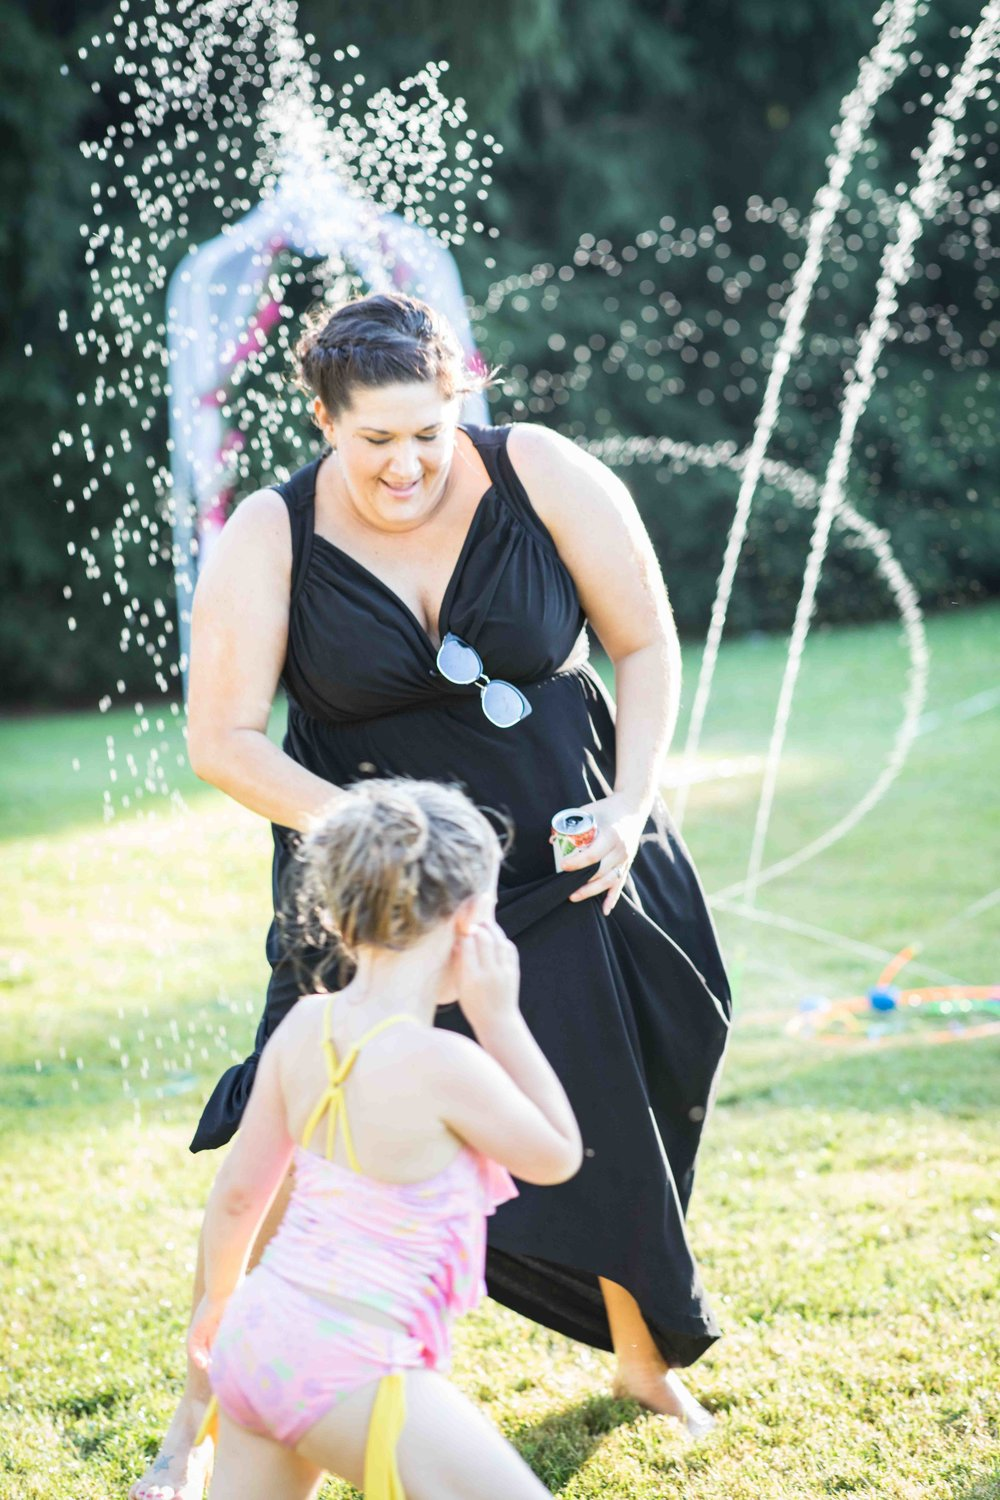 a bridesmaid gets soaked dancing with a little girl in the water